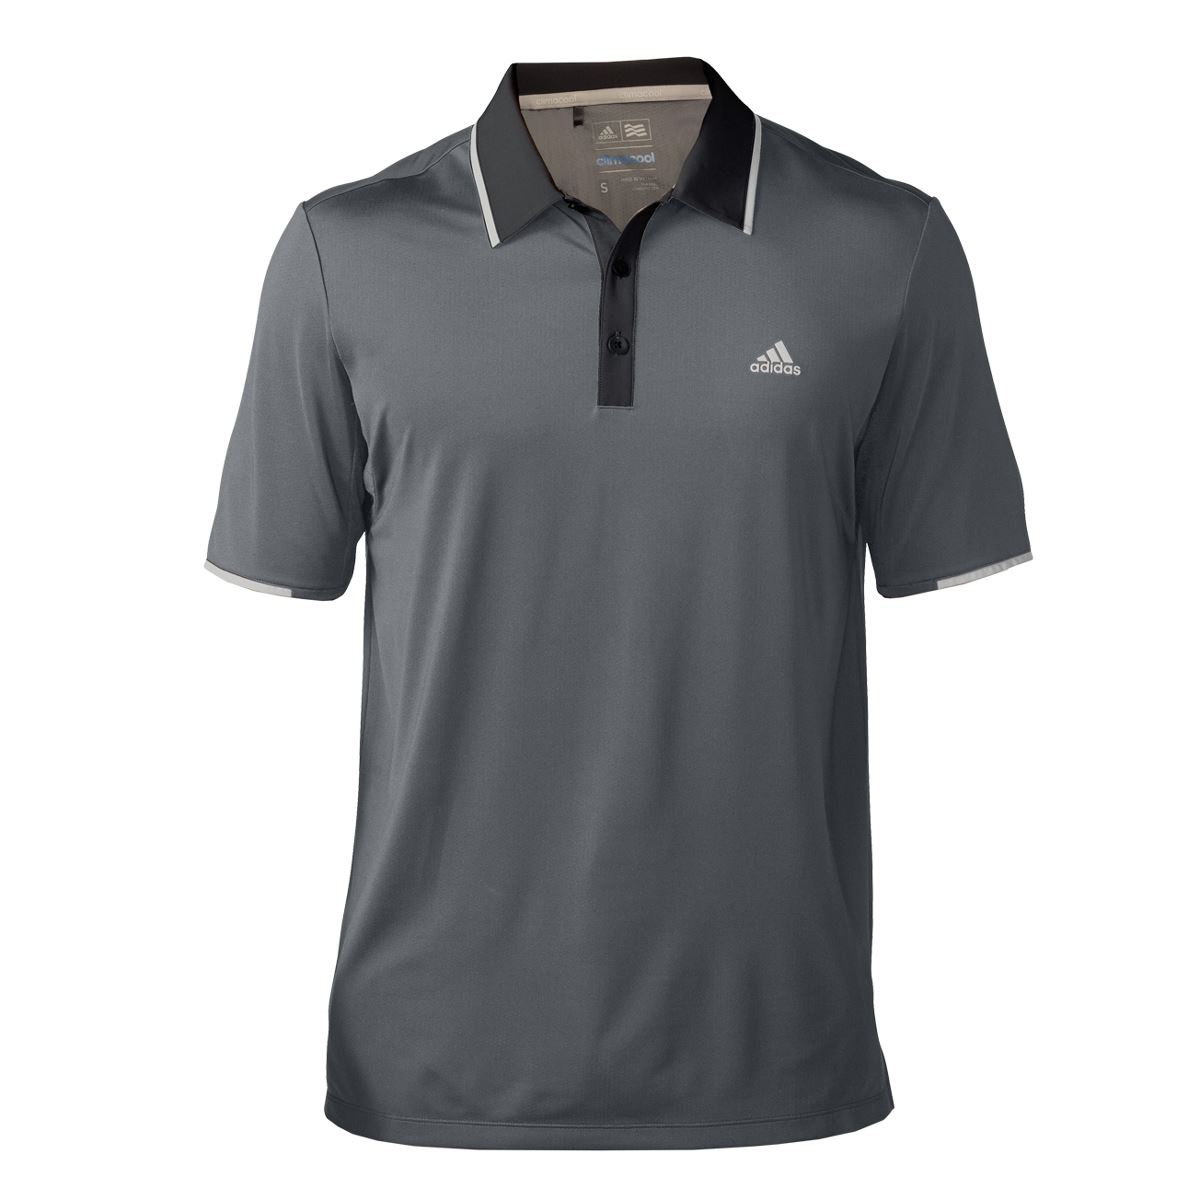 New 2016 adidas mens climacool branded performance golf for Branded polo t shirts